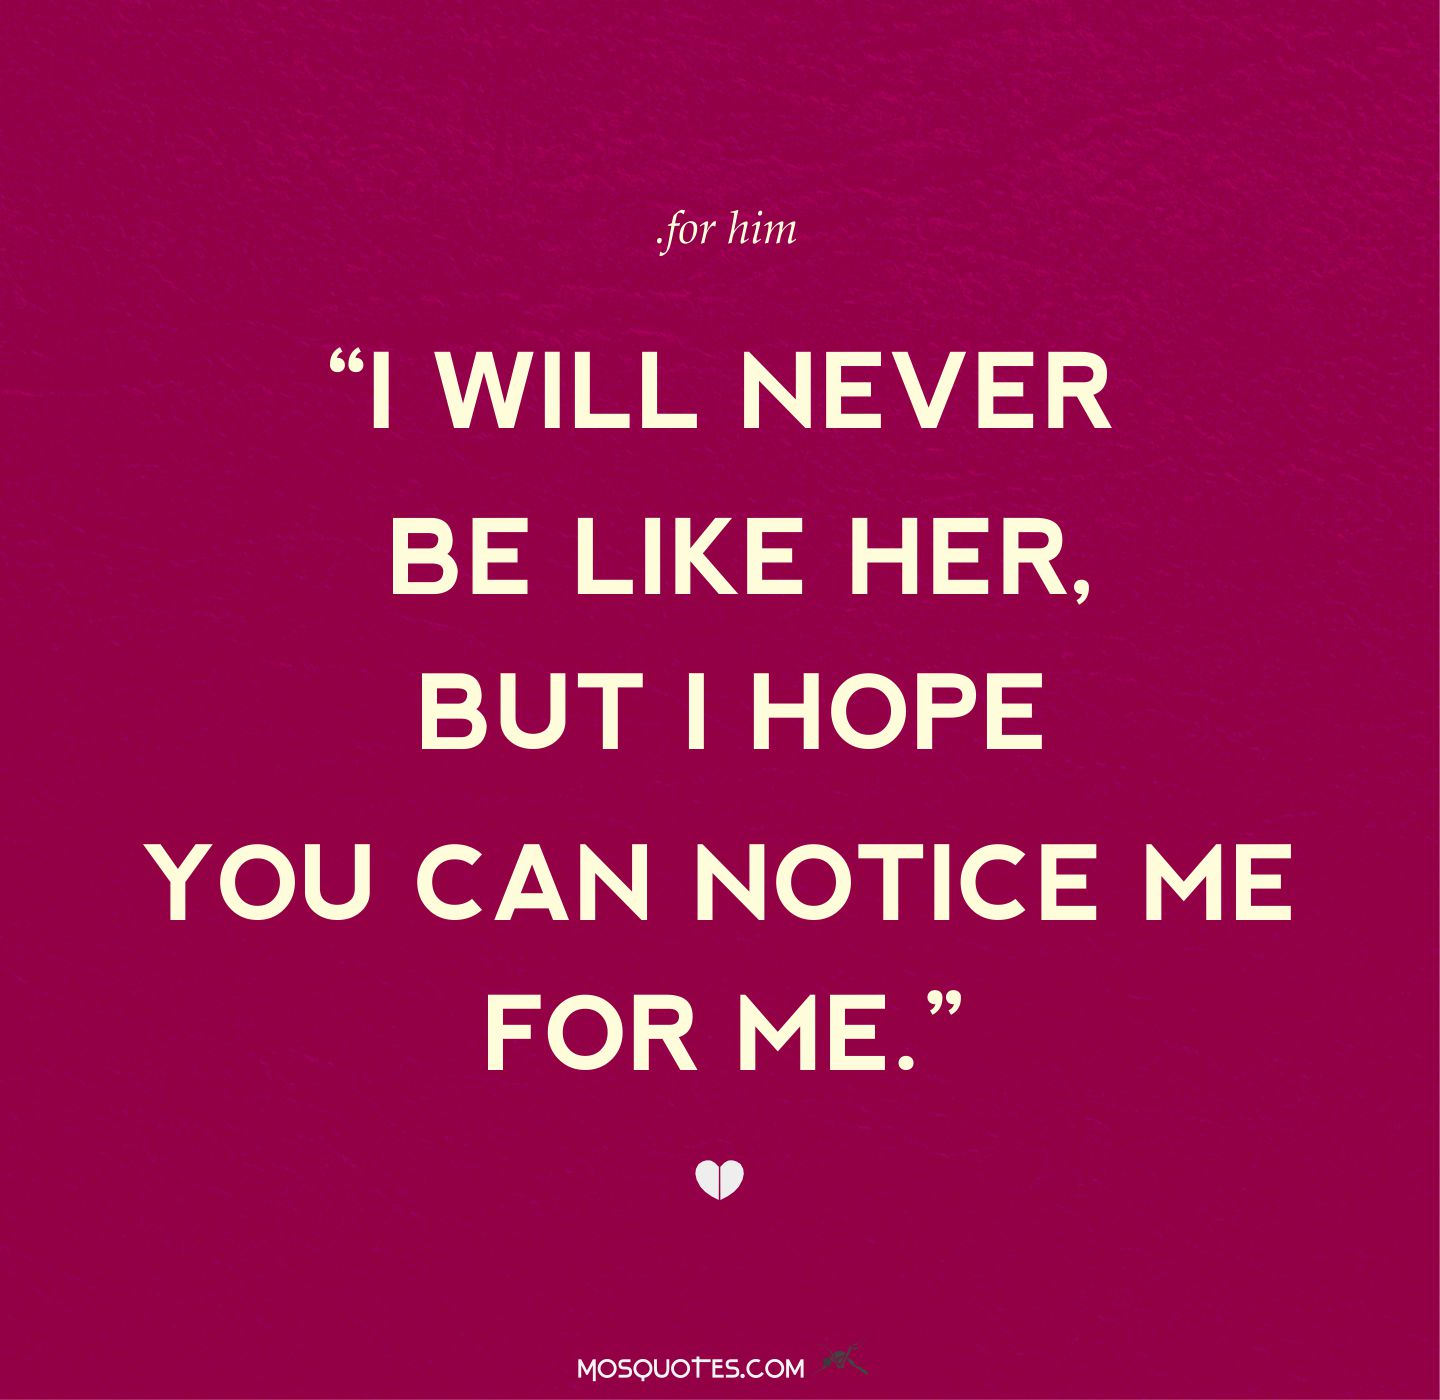 I Love You Quotes: I Like Her Quotes. QuotesGram